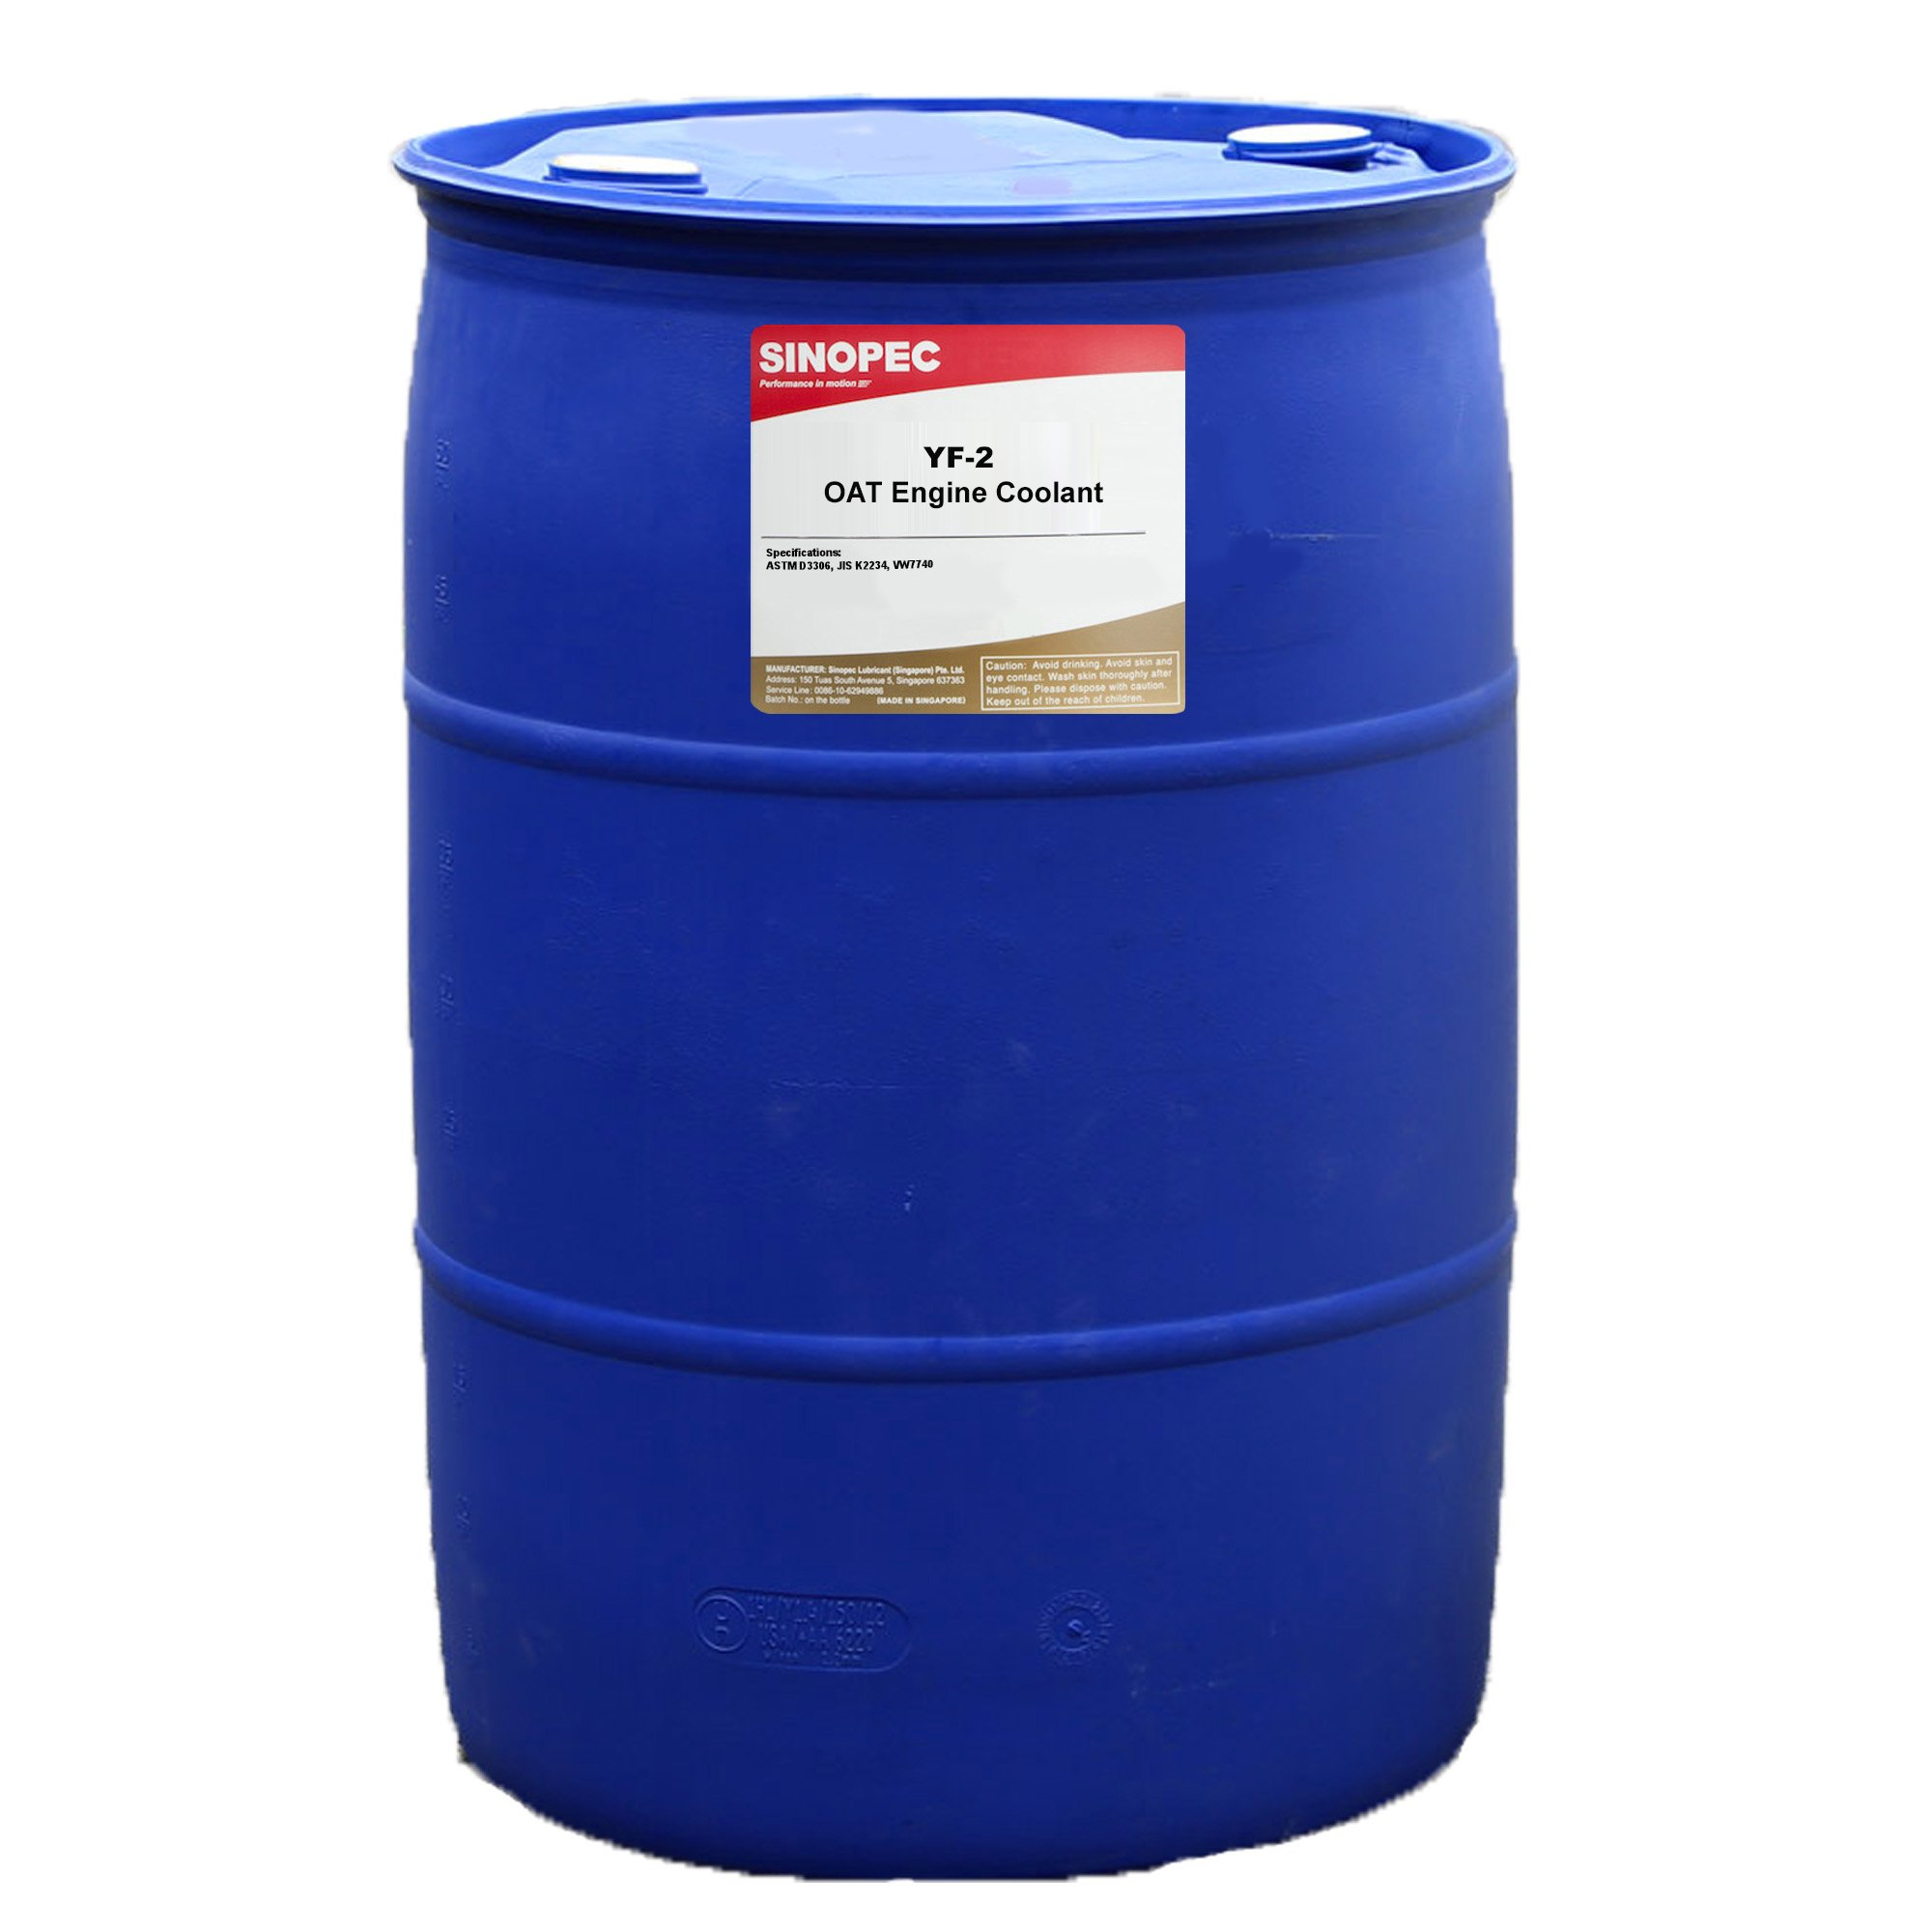 Red HD Extended Life 50/50 Coolant/Antifreeze (ELC/OAT) - 55 Gallon Drum by Sinopec